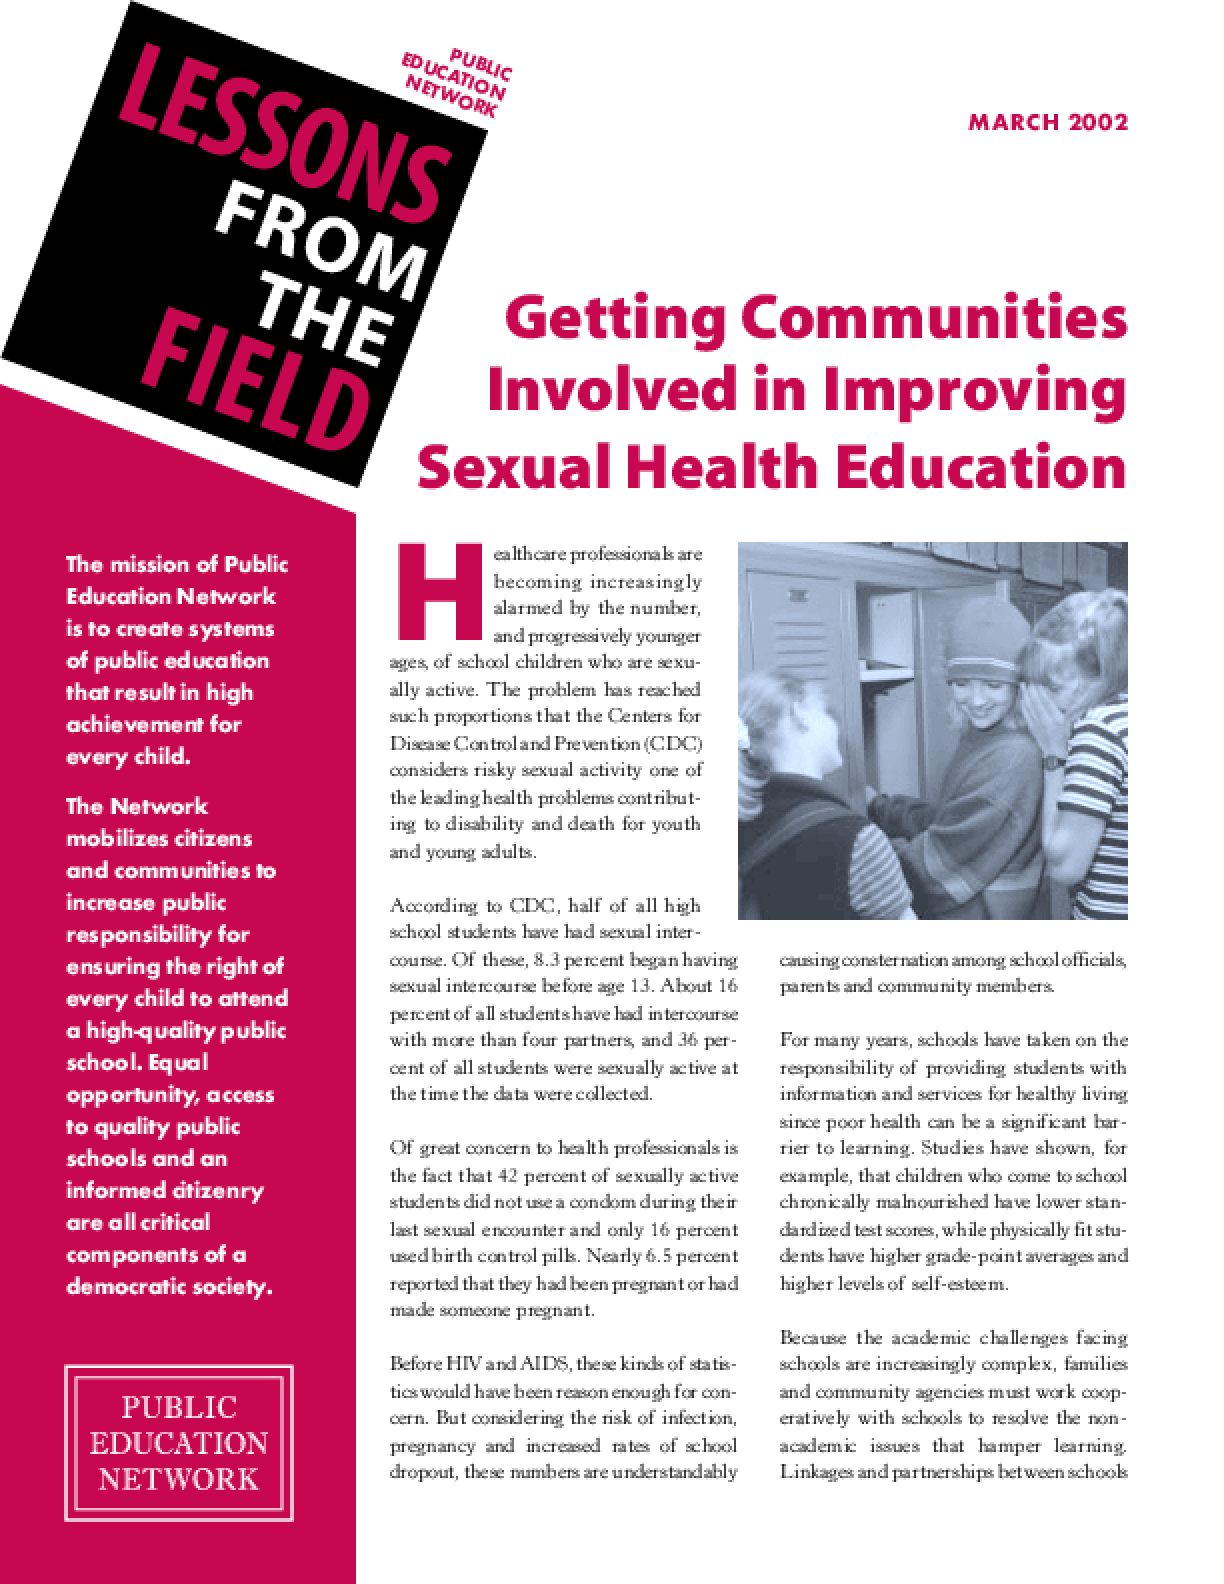 Getting Communities Involved in Improving Sexual Health Education